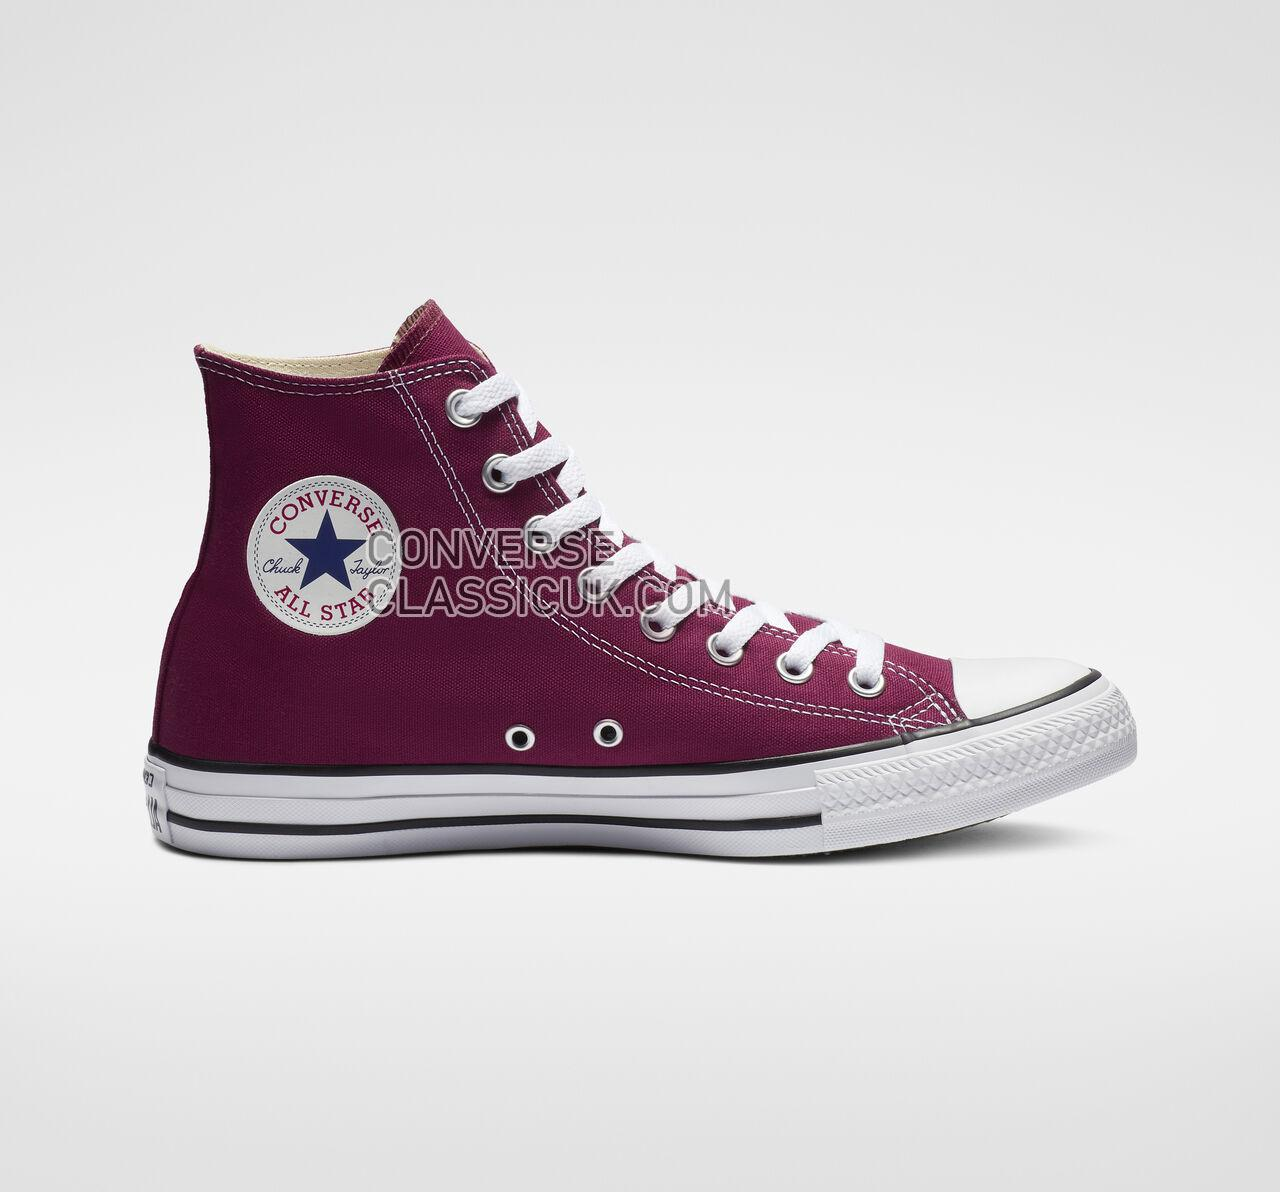 Converse Chuck Taylor All Star High Top Mens Womens Unisex M9613 Maroon Shoes